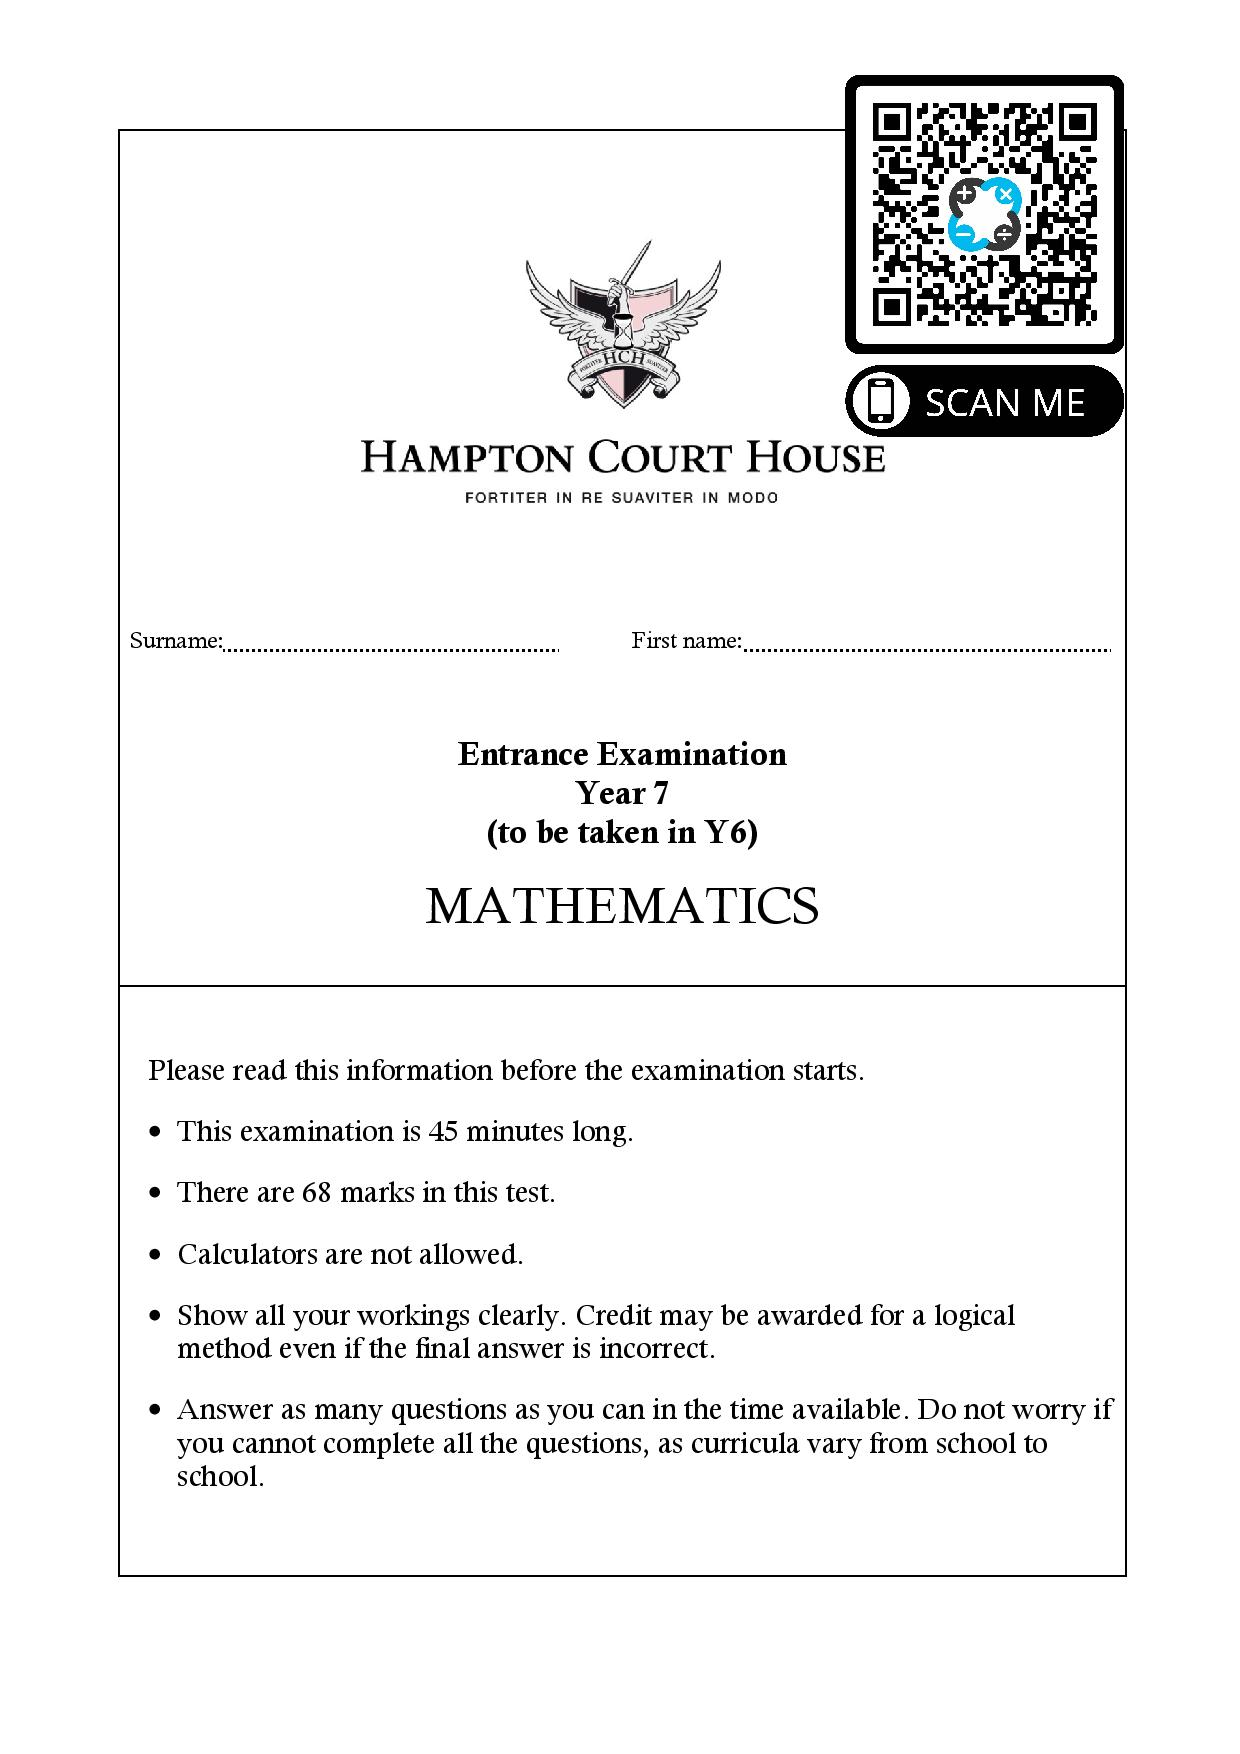 Hampton Court House Entrance Examination Year 7 to be taken in Y6 MATHEMATICS Questions Paper page 001 1